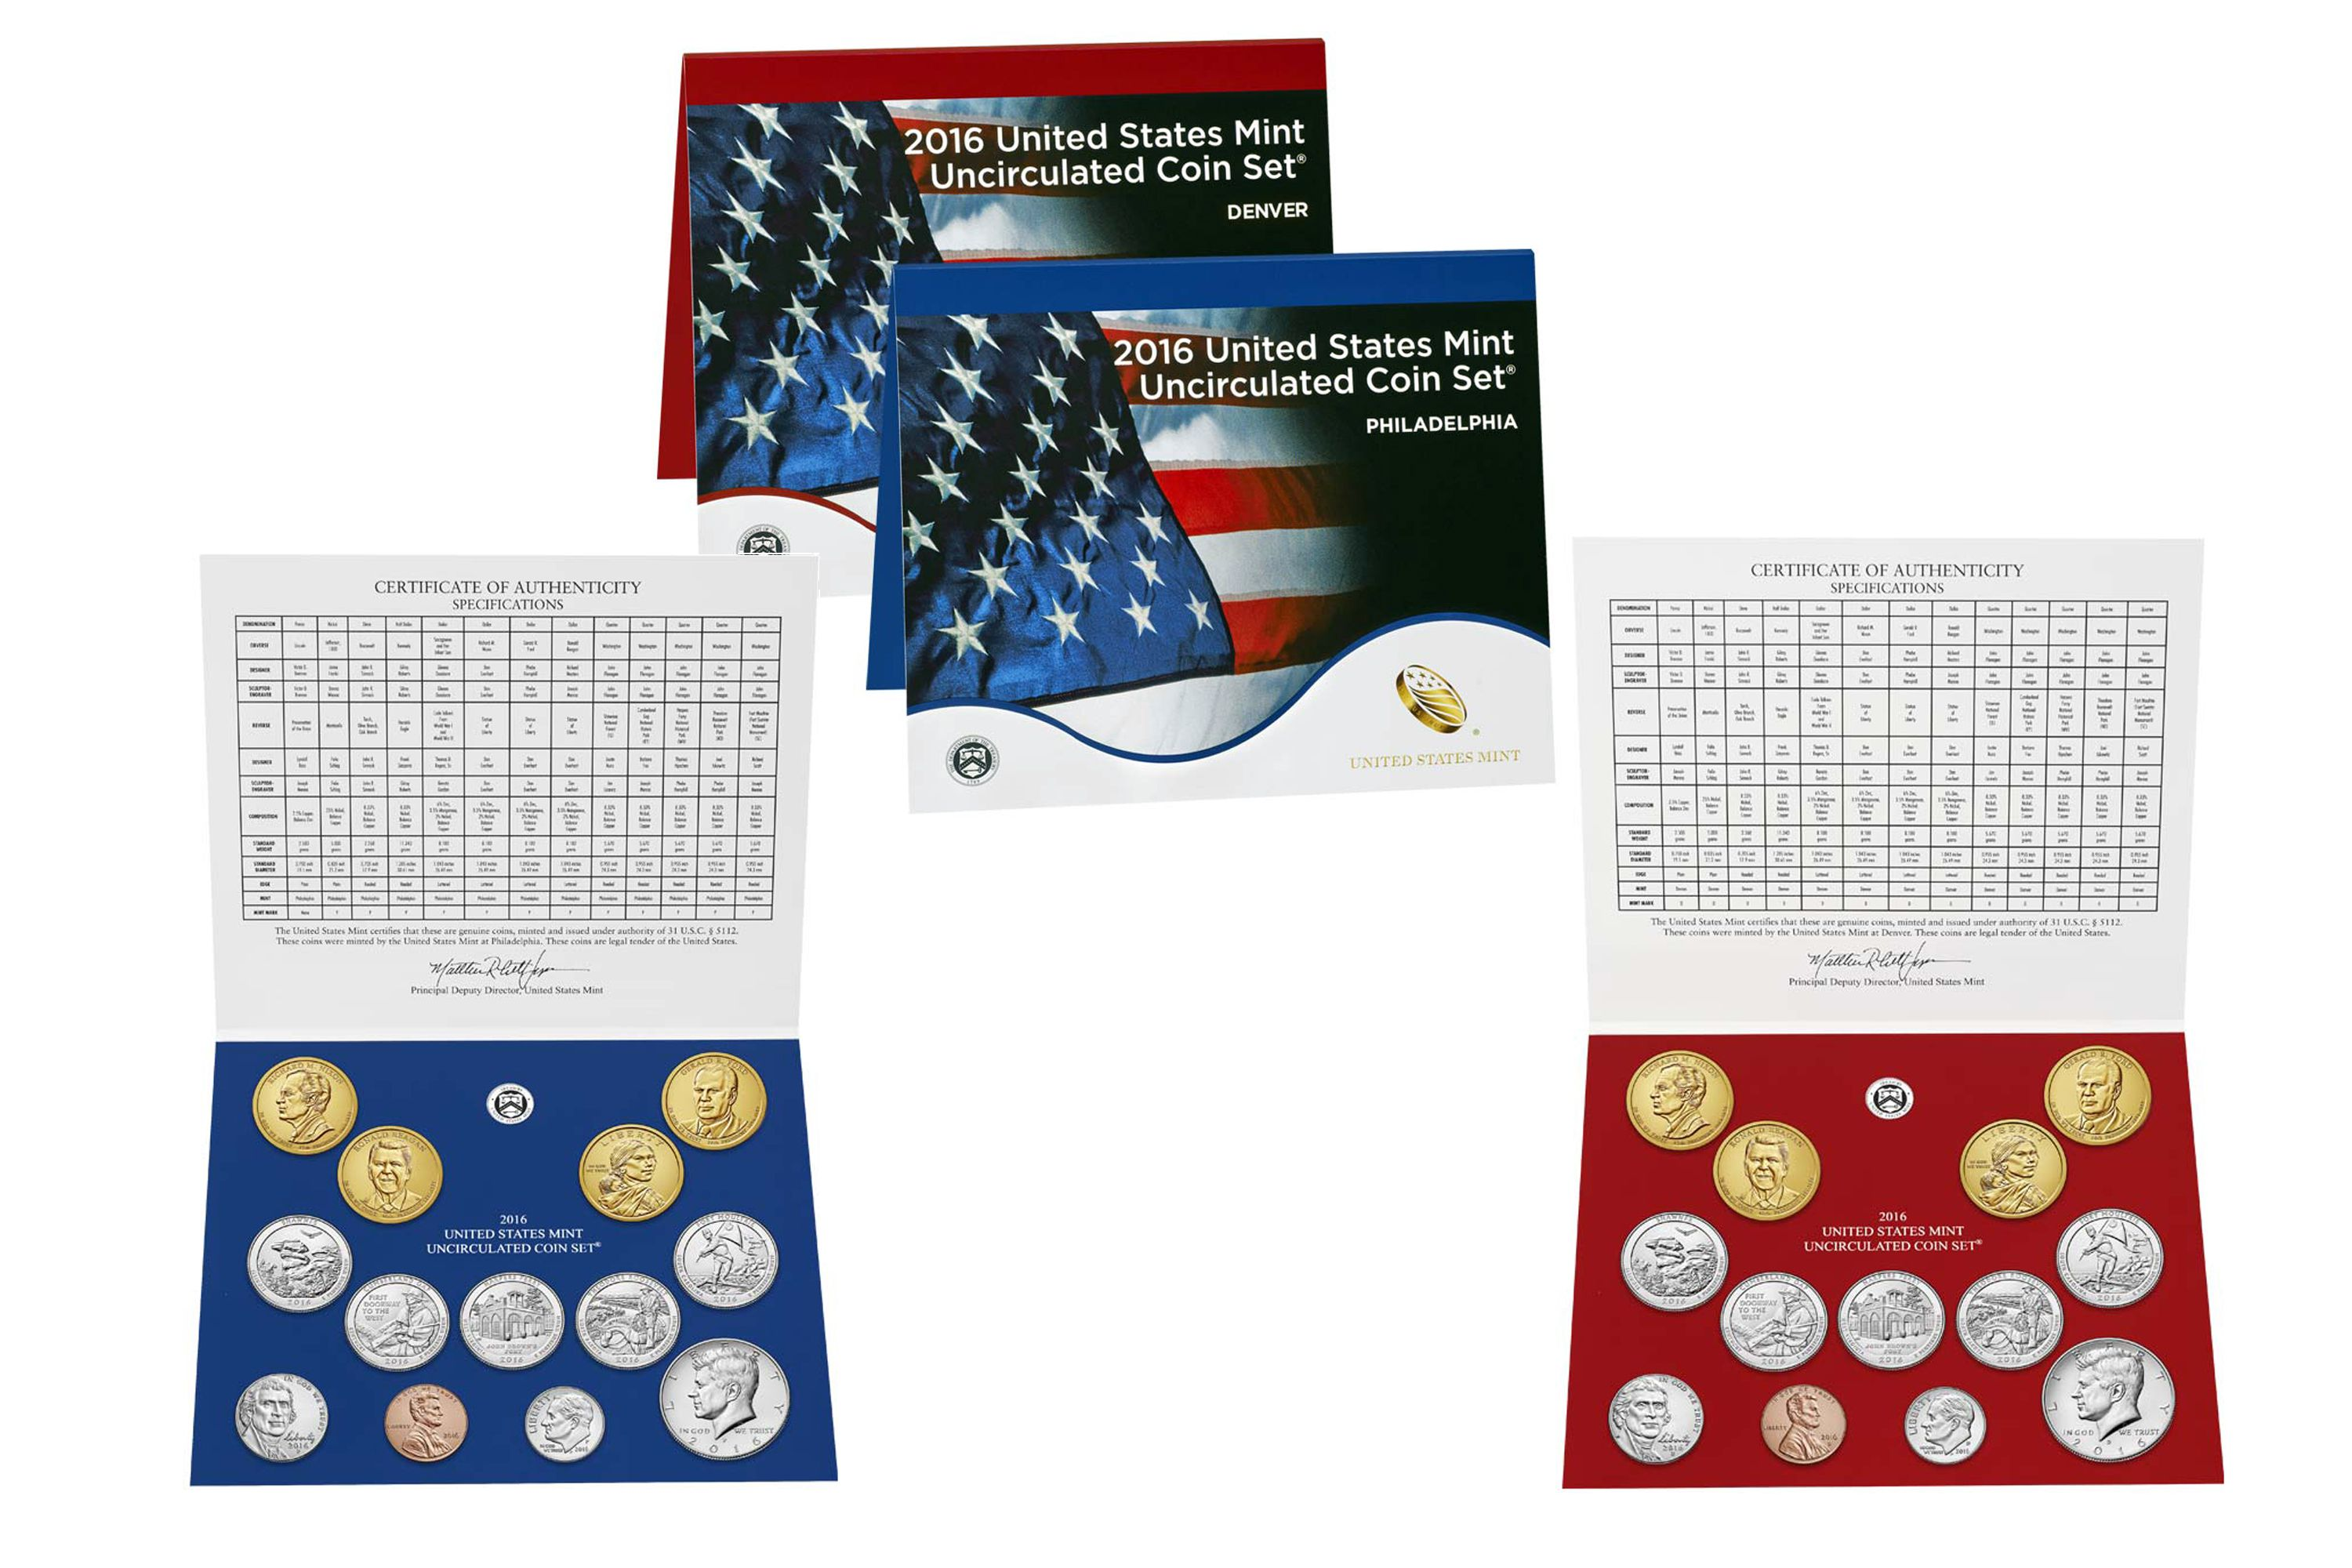 2016 United States Mint Uncirculated Coin Sets